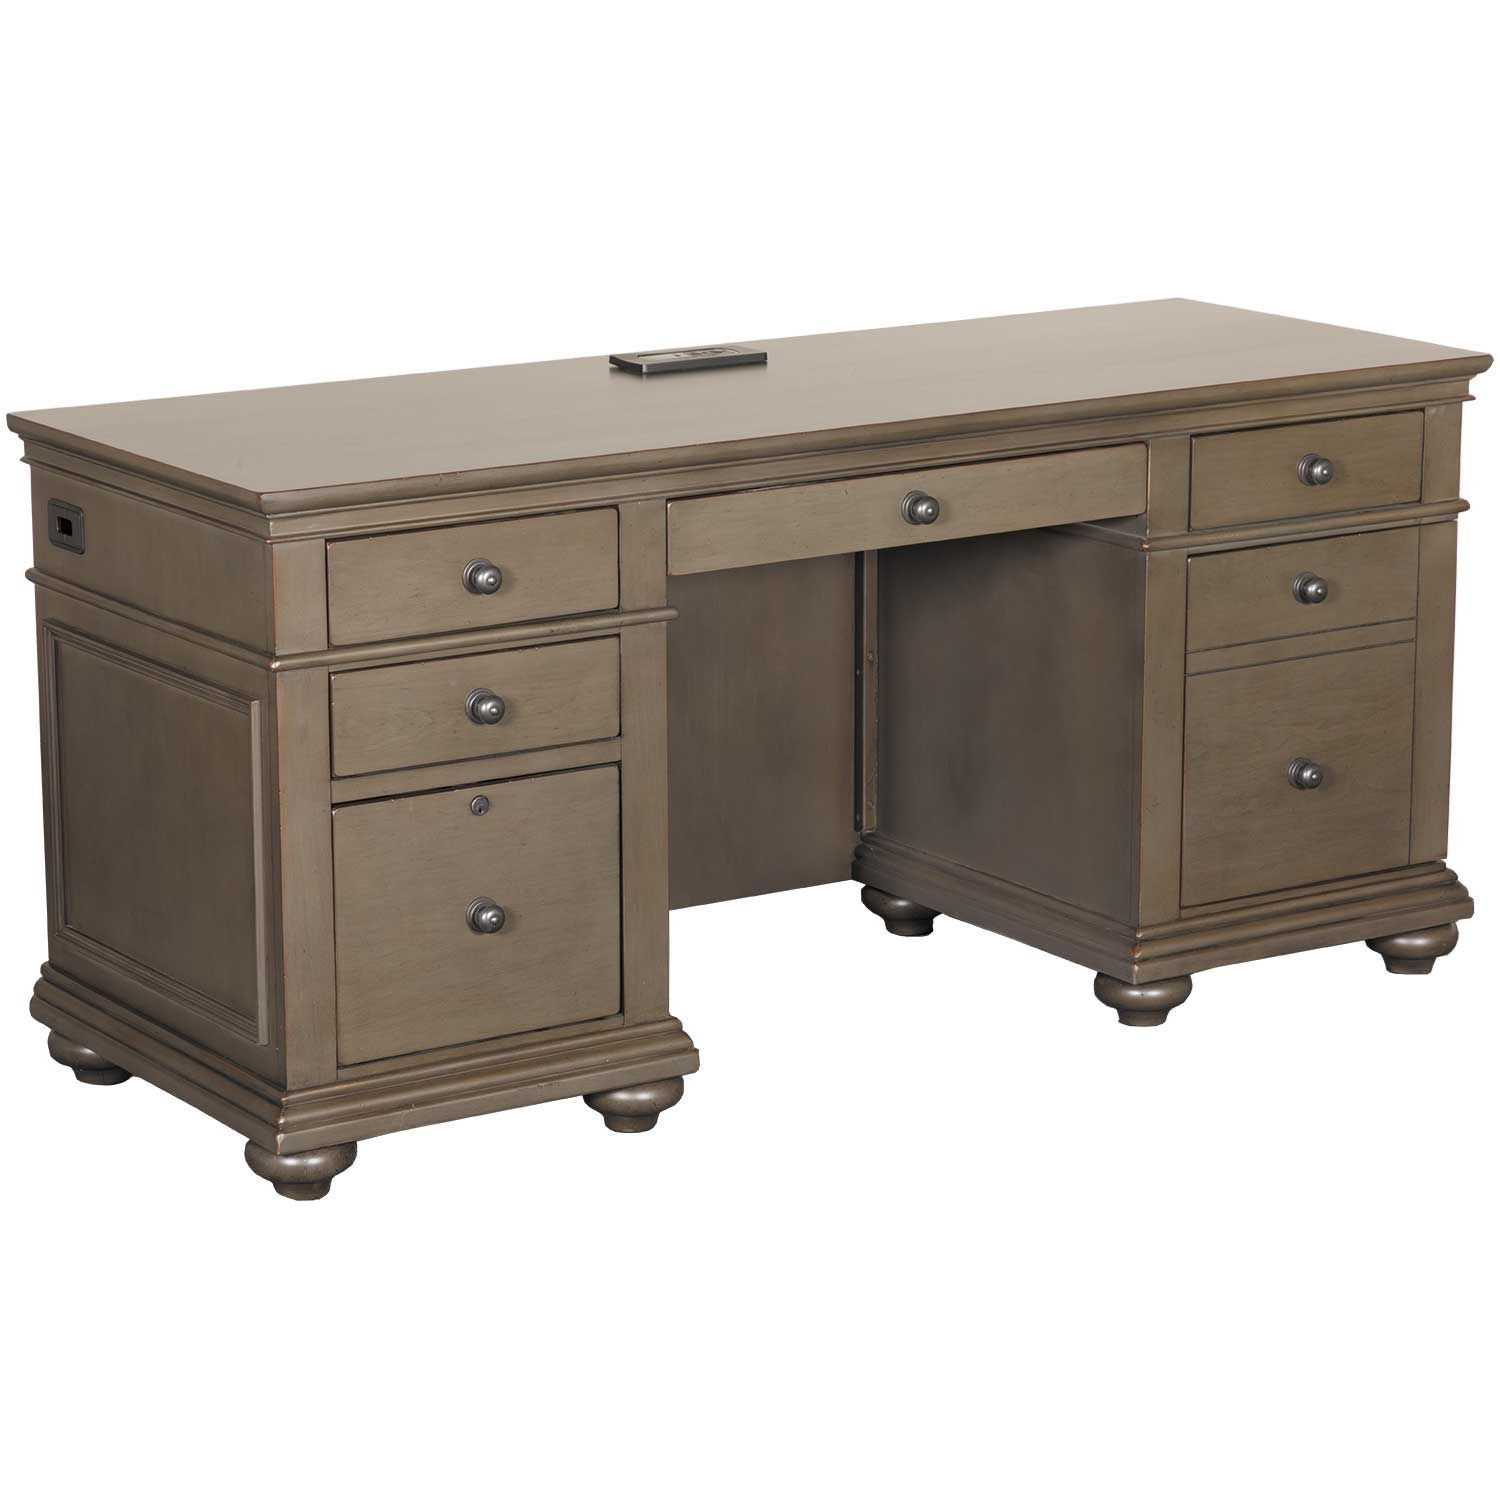 "Picture of Oxford 66"" Credenza Desk"